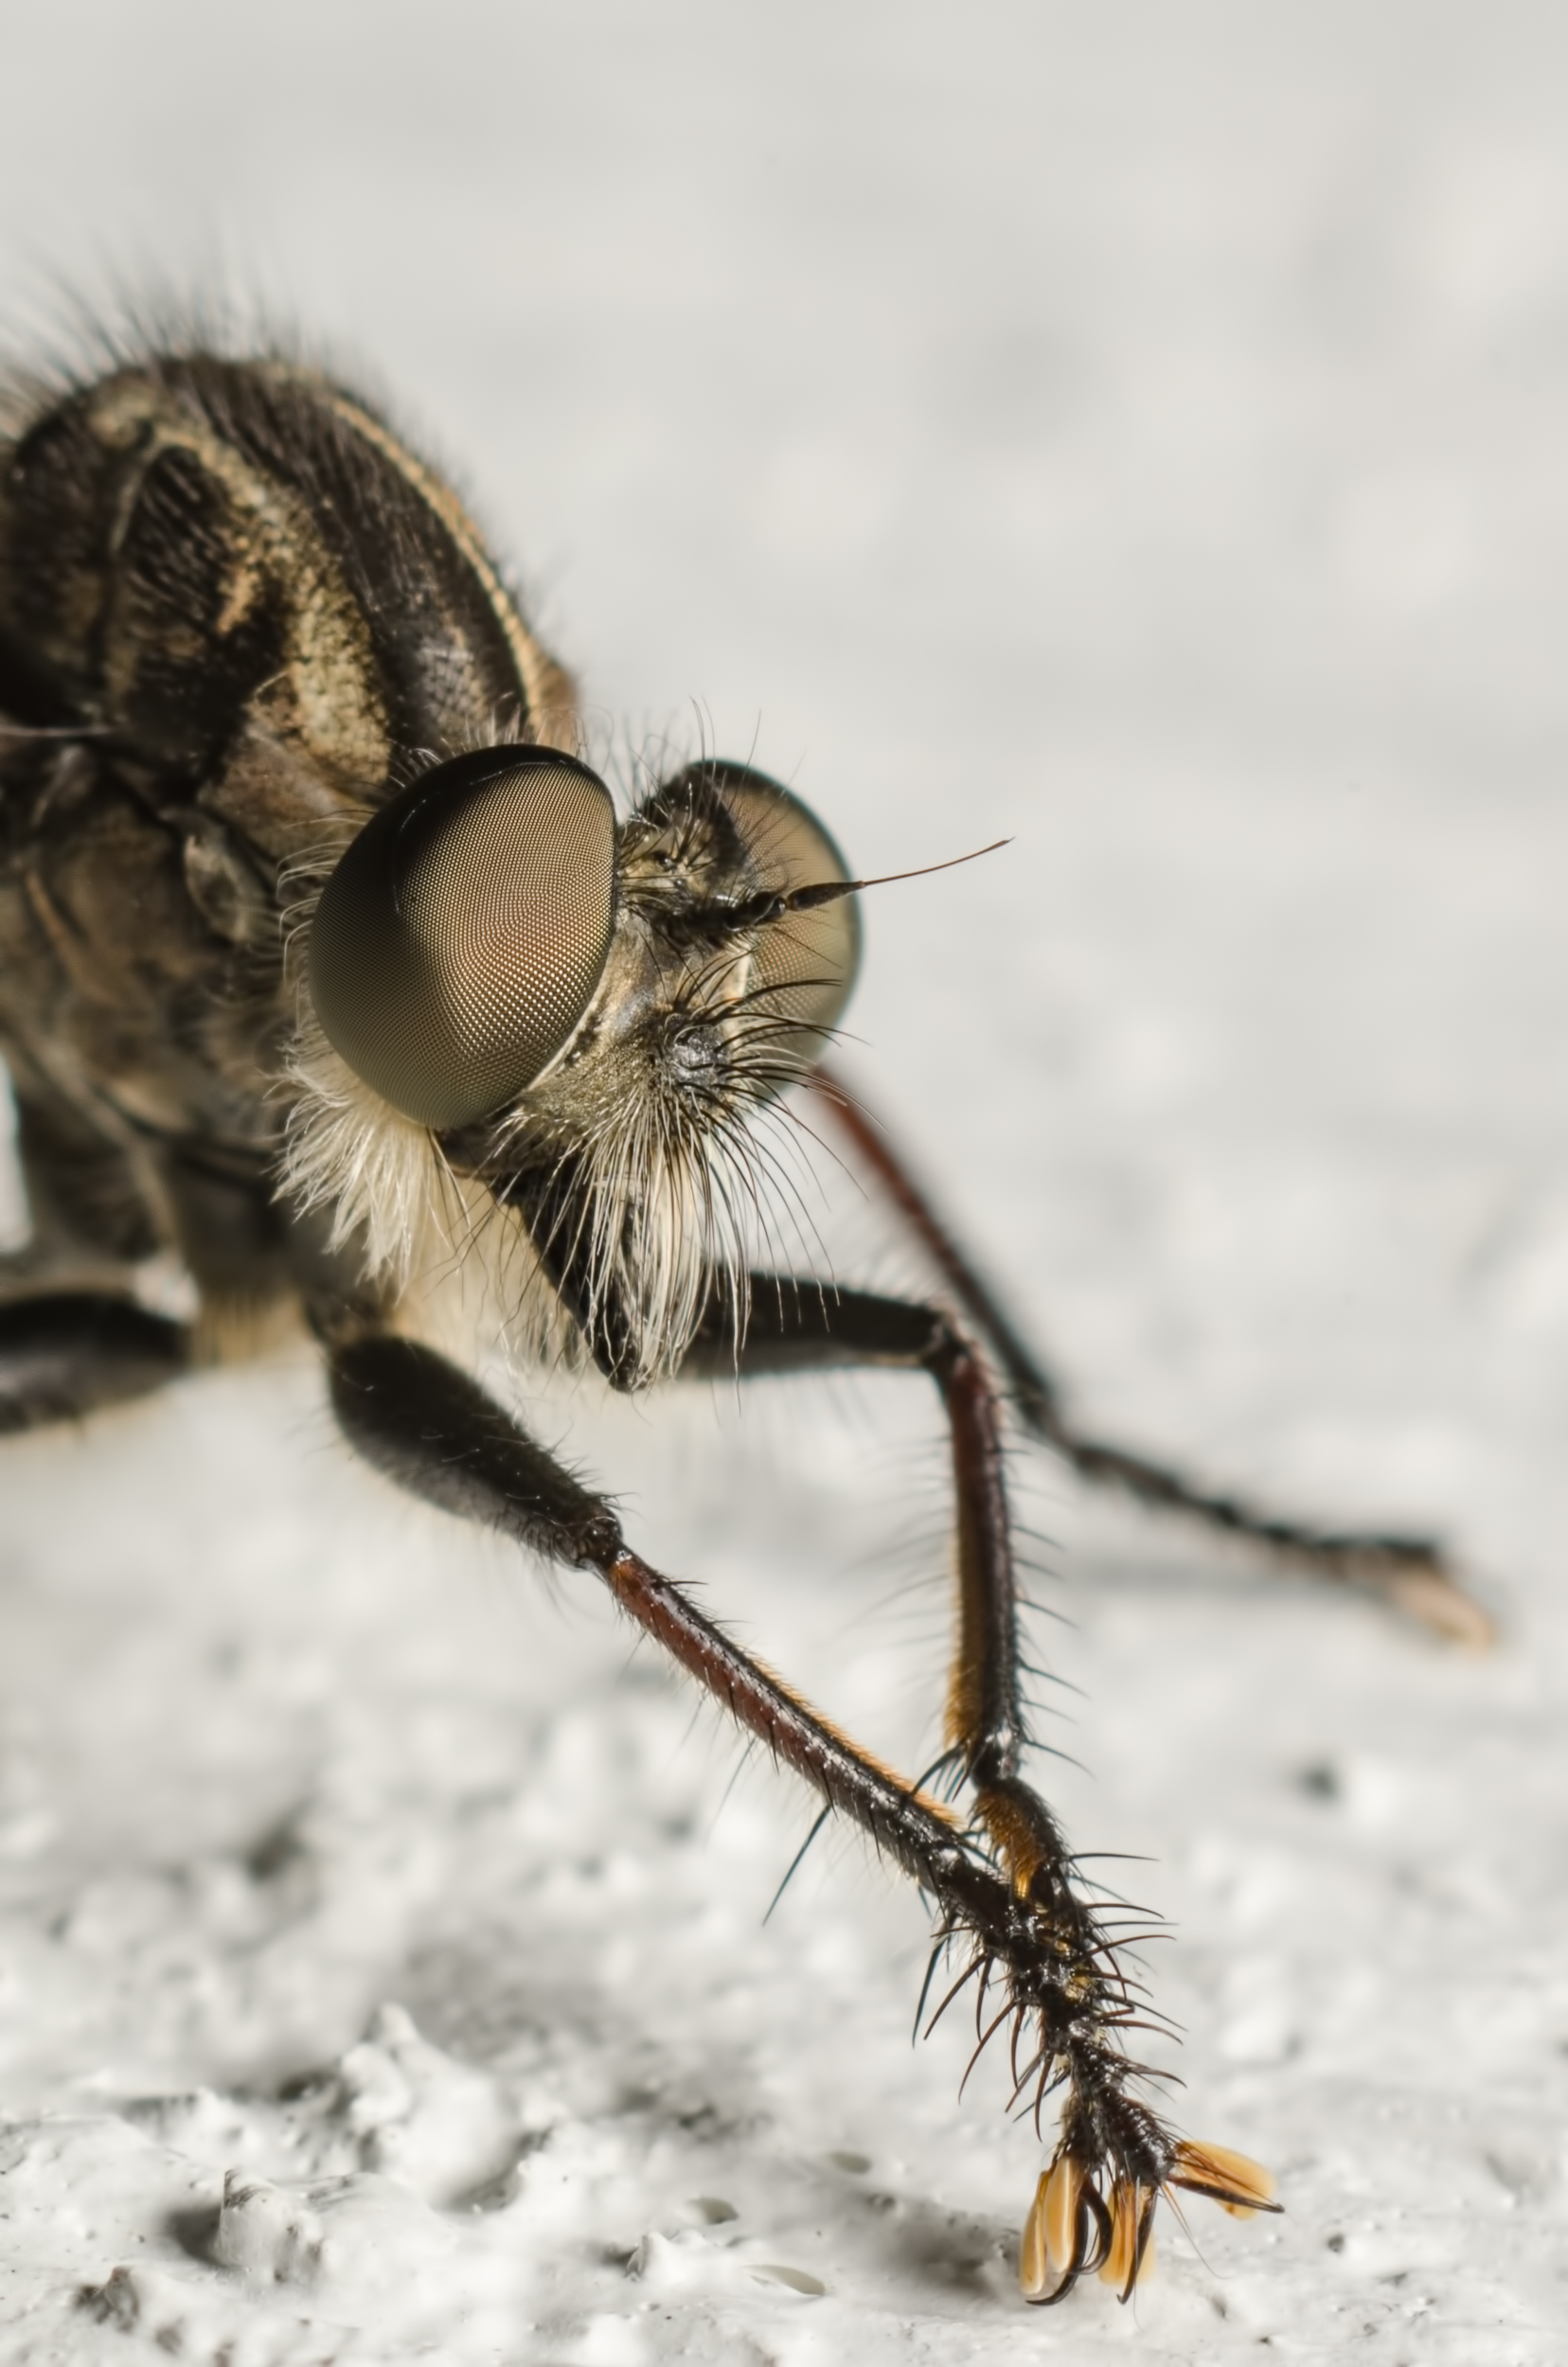 Robber Fly Nikon D7000 ISO 200f/11 1/125 sec.Nikkor 105mm f/4 Micro AI manual focus lens + 27mm + 20mm + 14mm + 12mm extension tubes, off-body flash with DIY snoot/diffuser